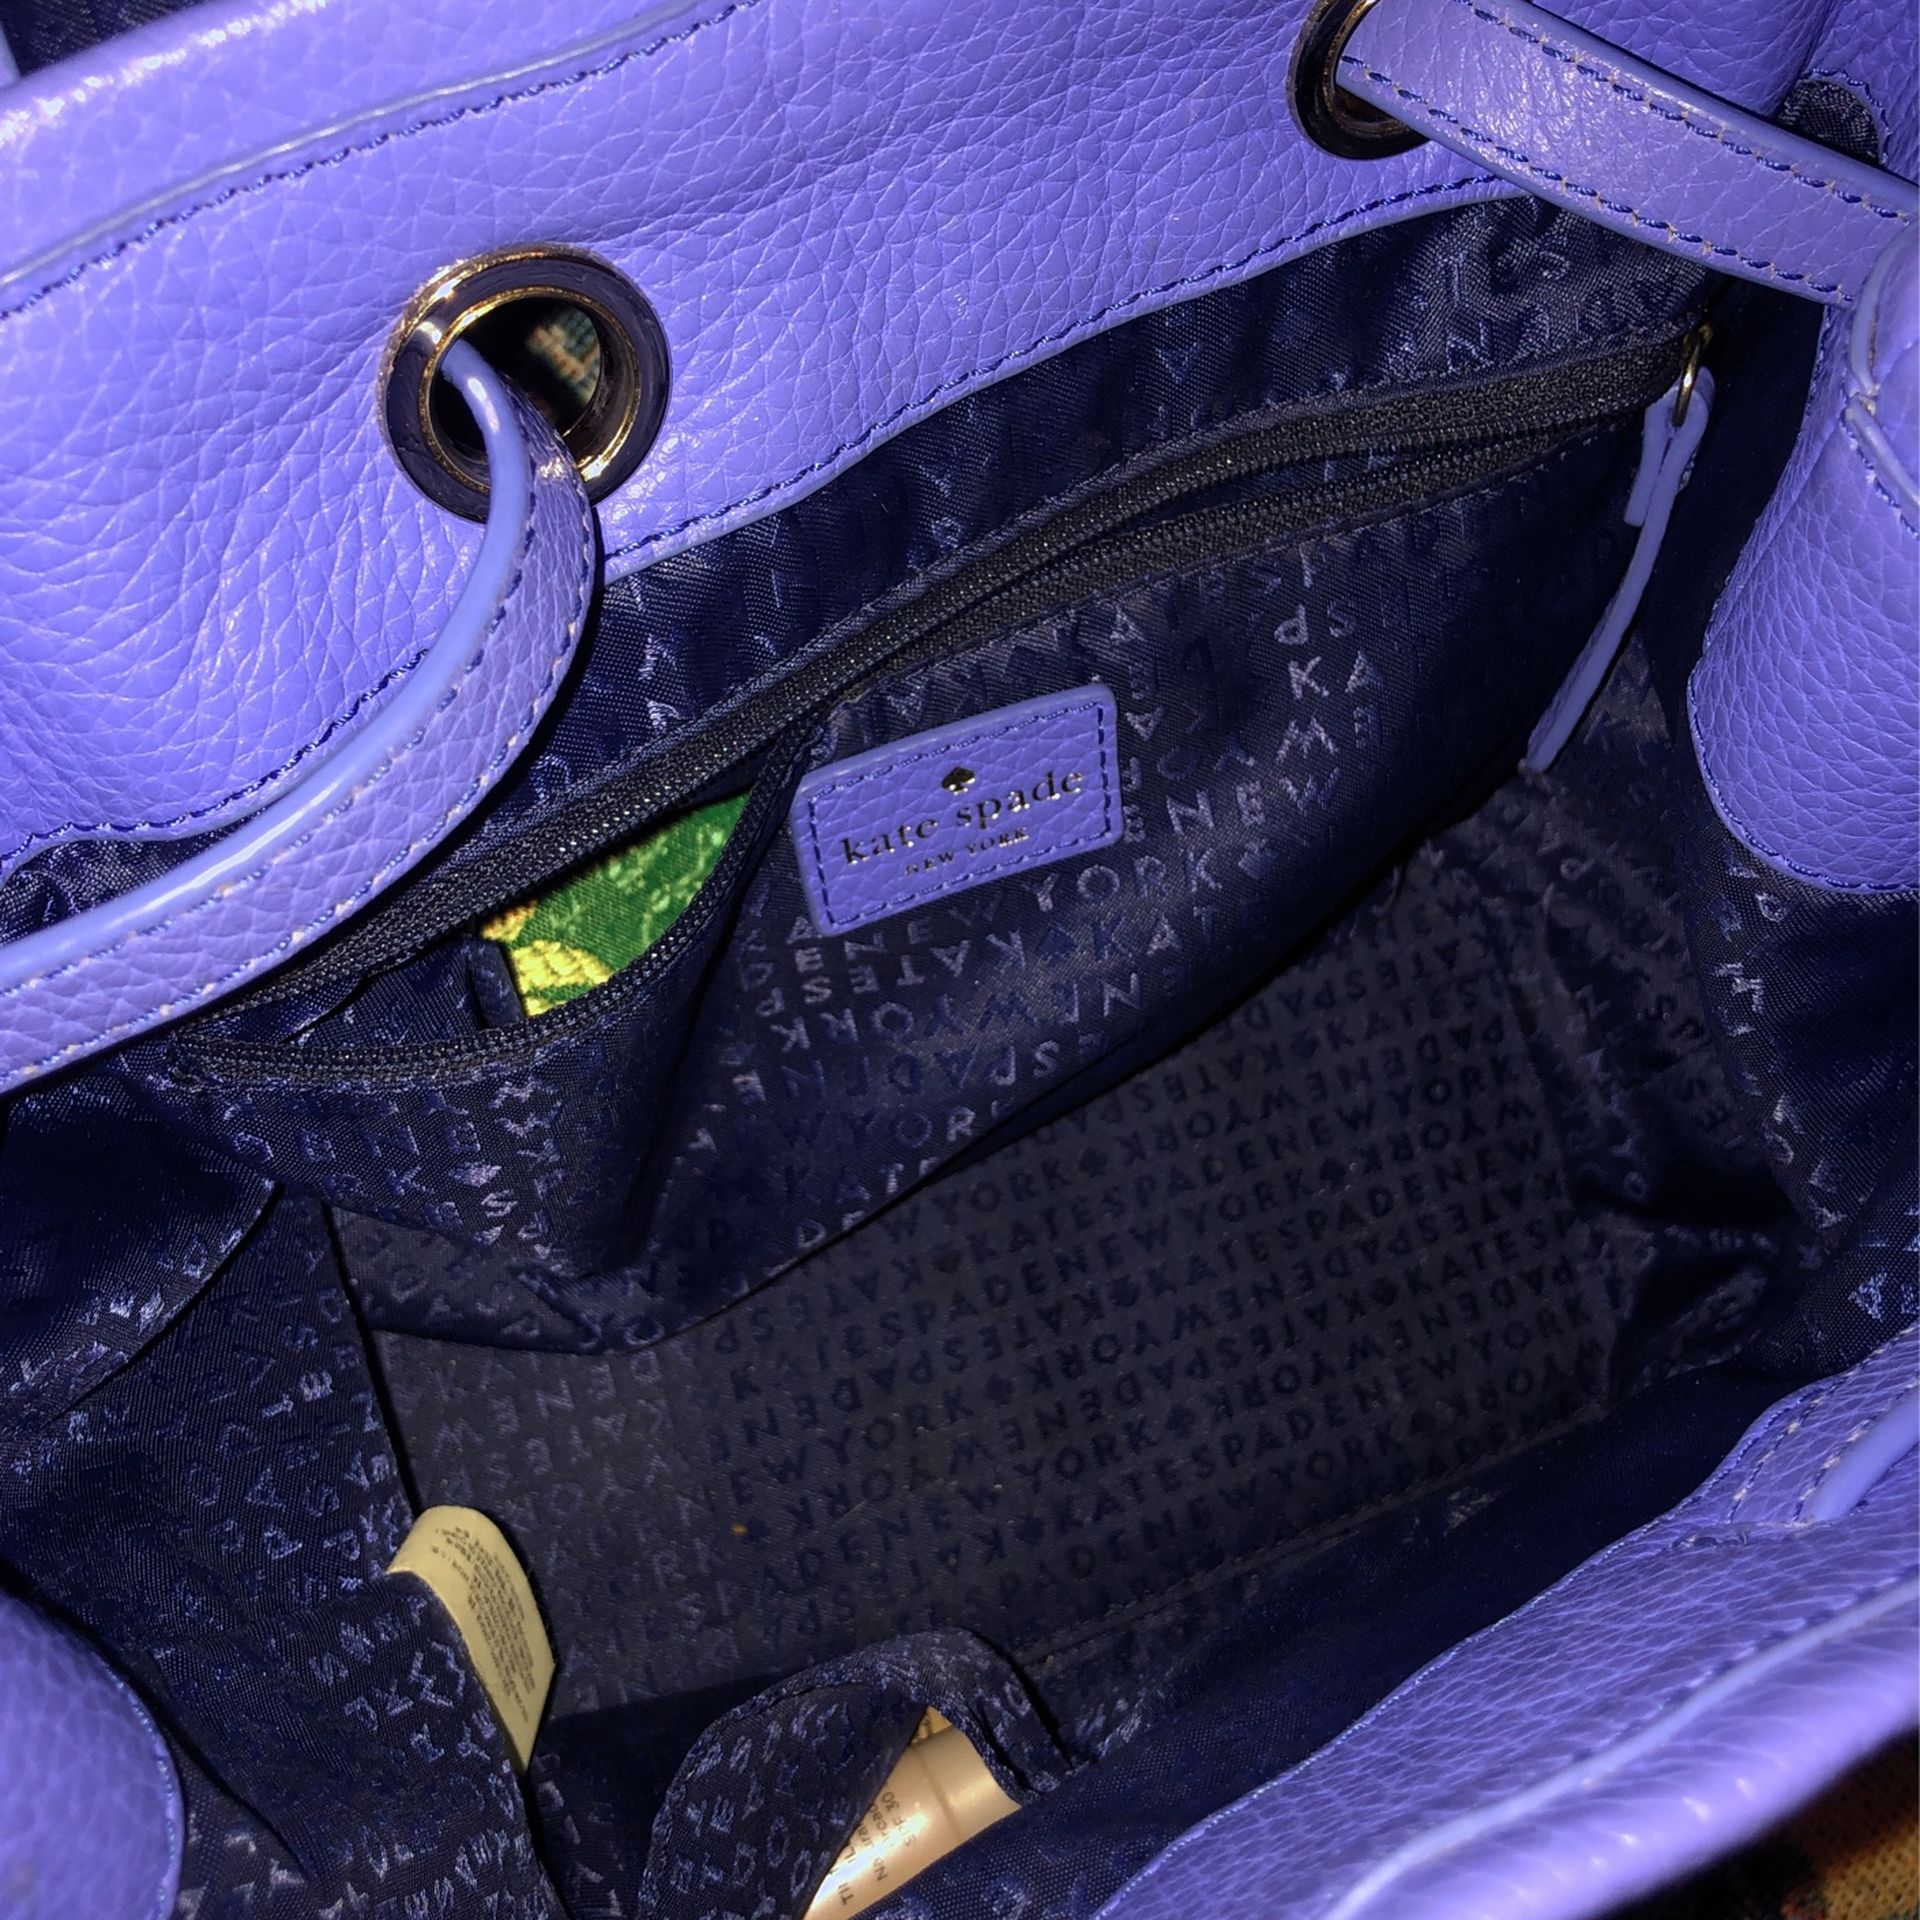 Kate Spade backpack and wallet